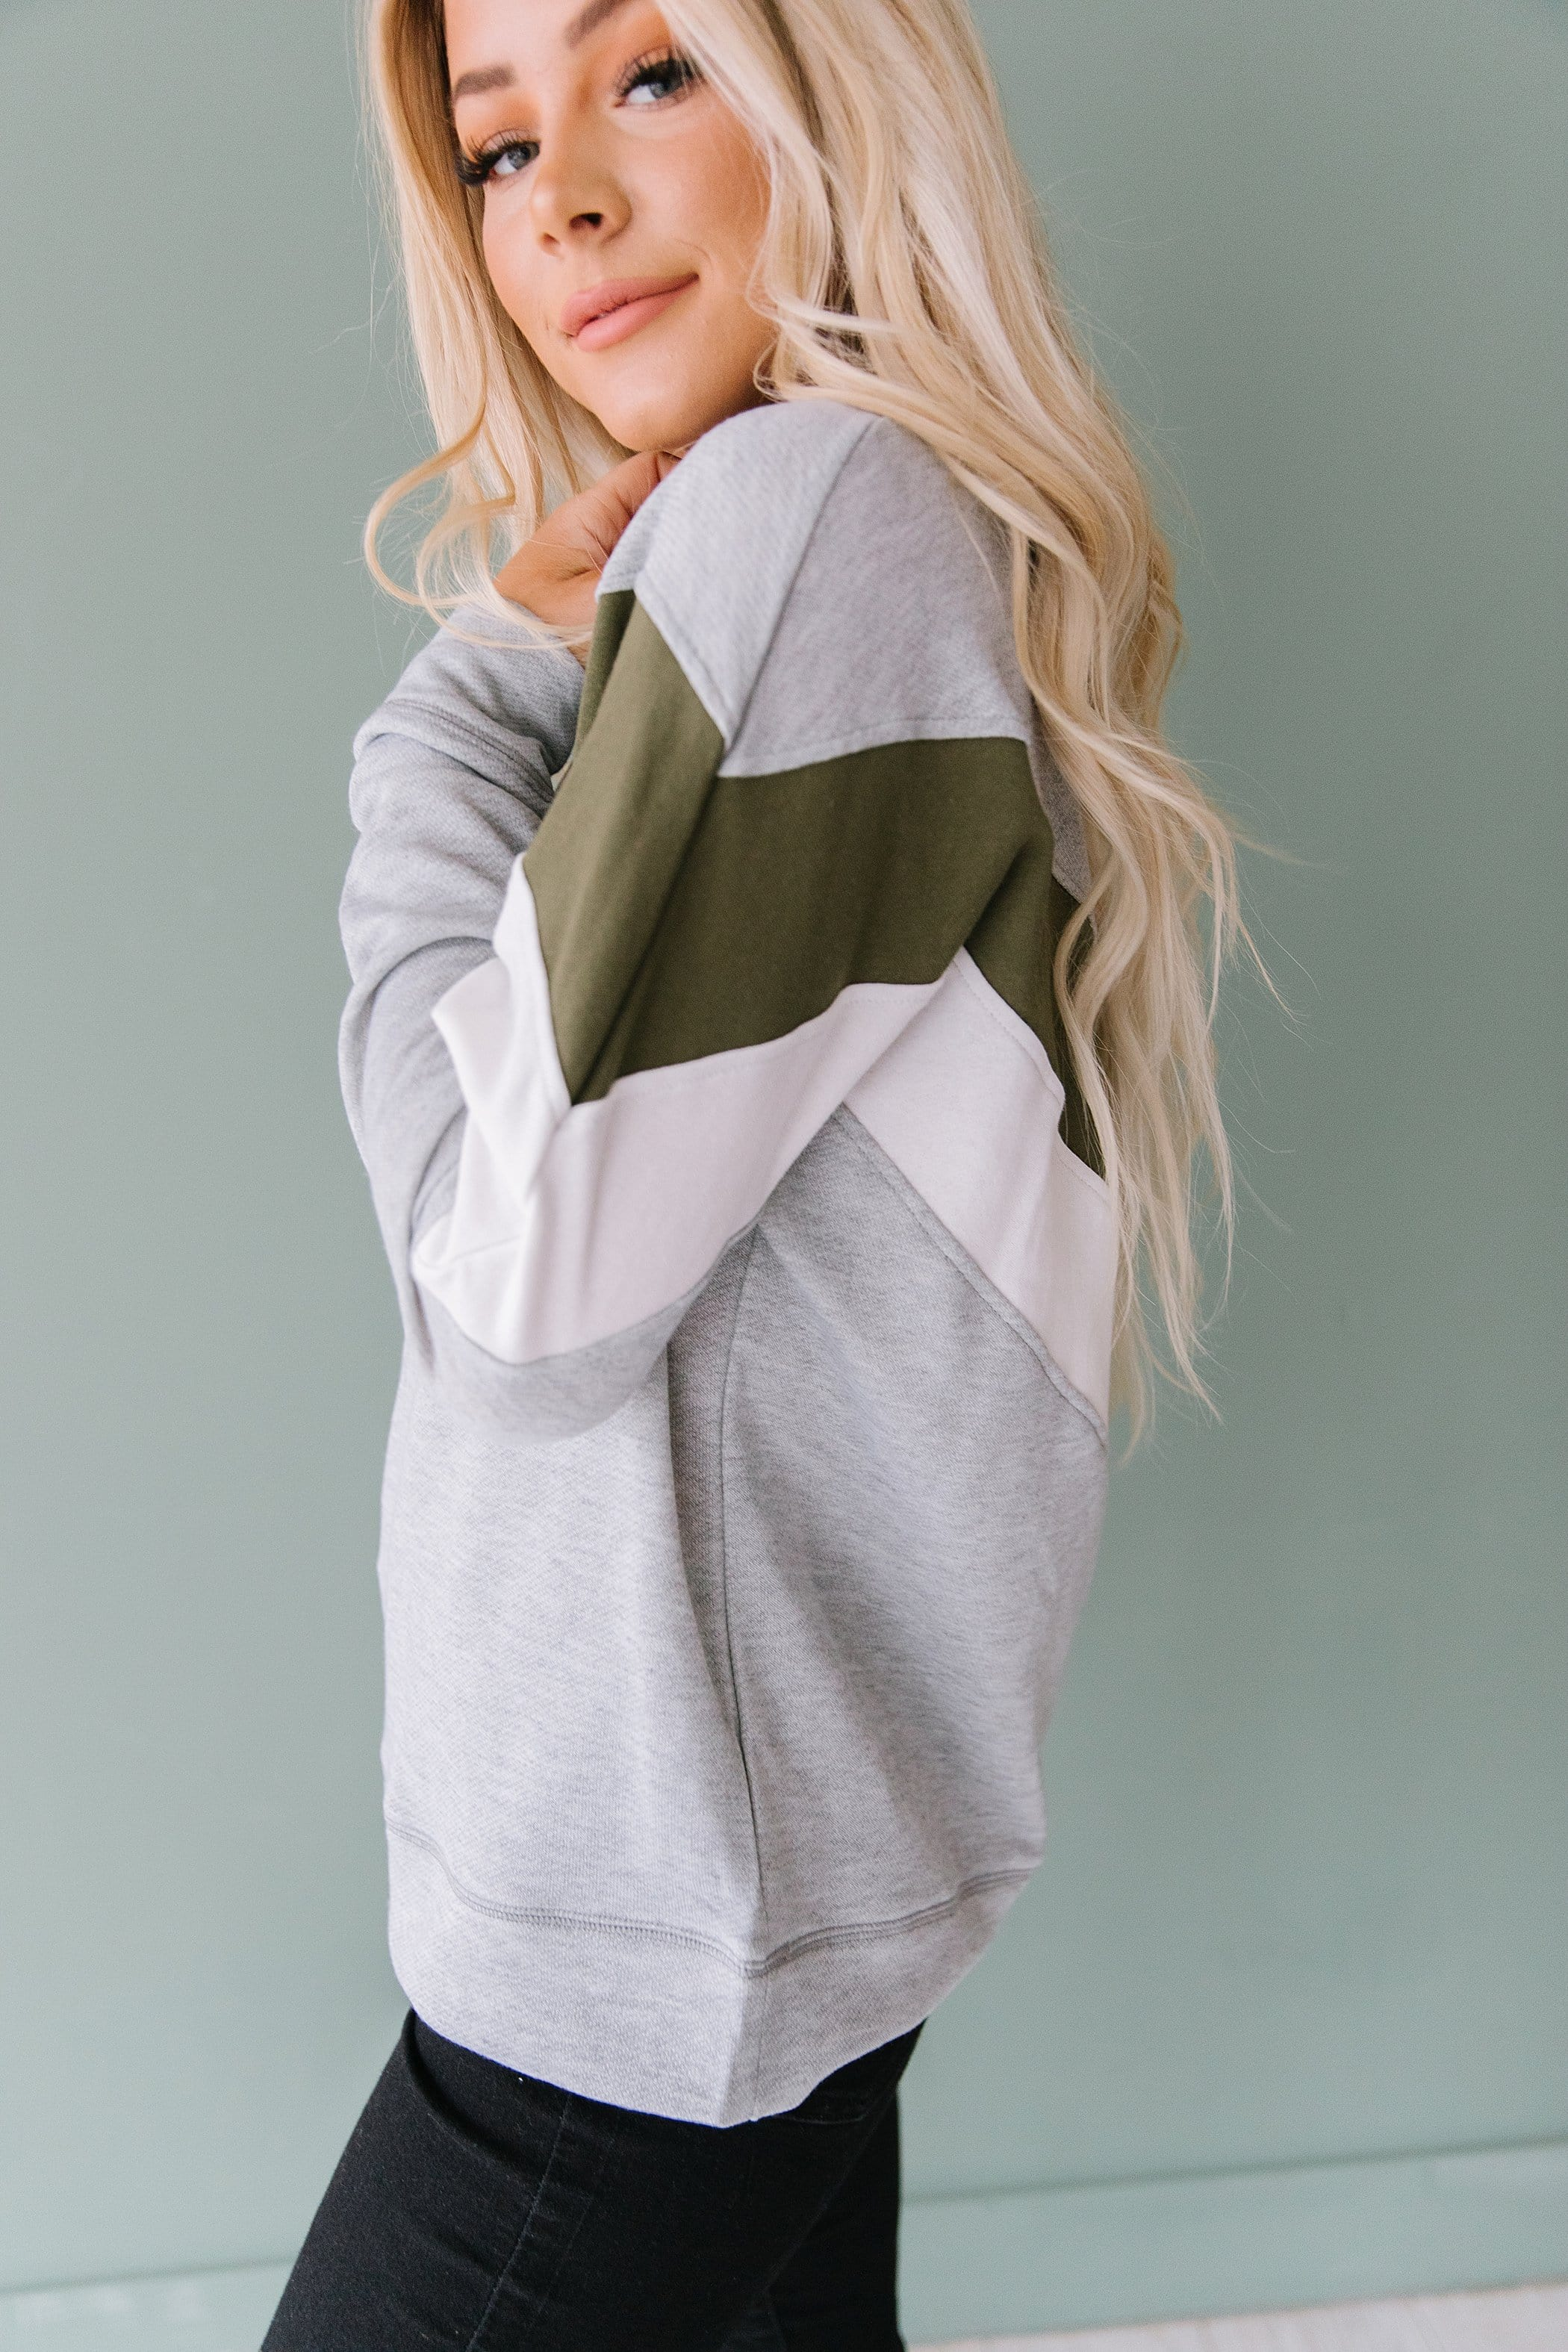 The Shay Color Block Sweatshirt in Dusty Rose and Heather Grey